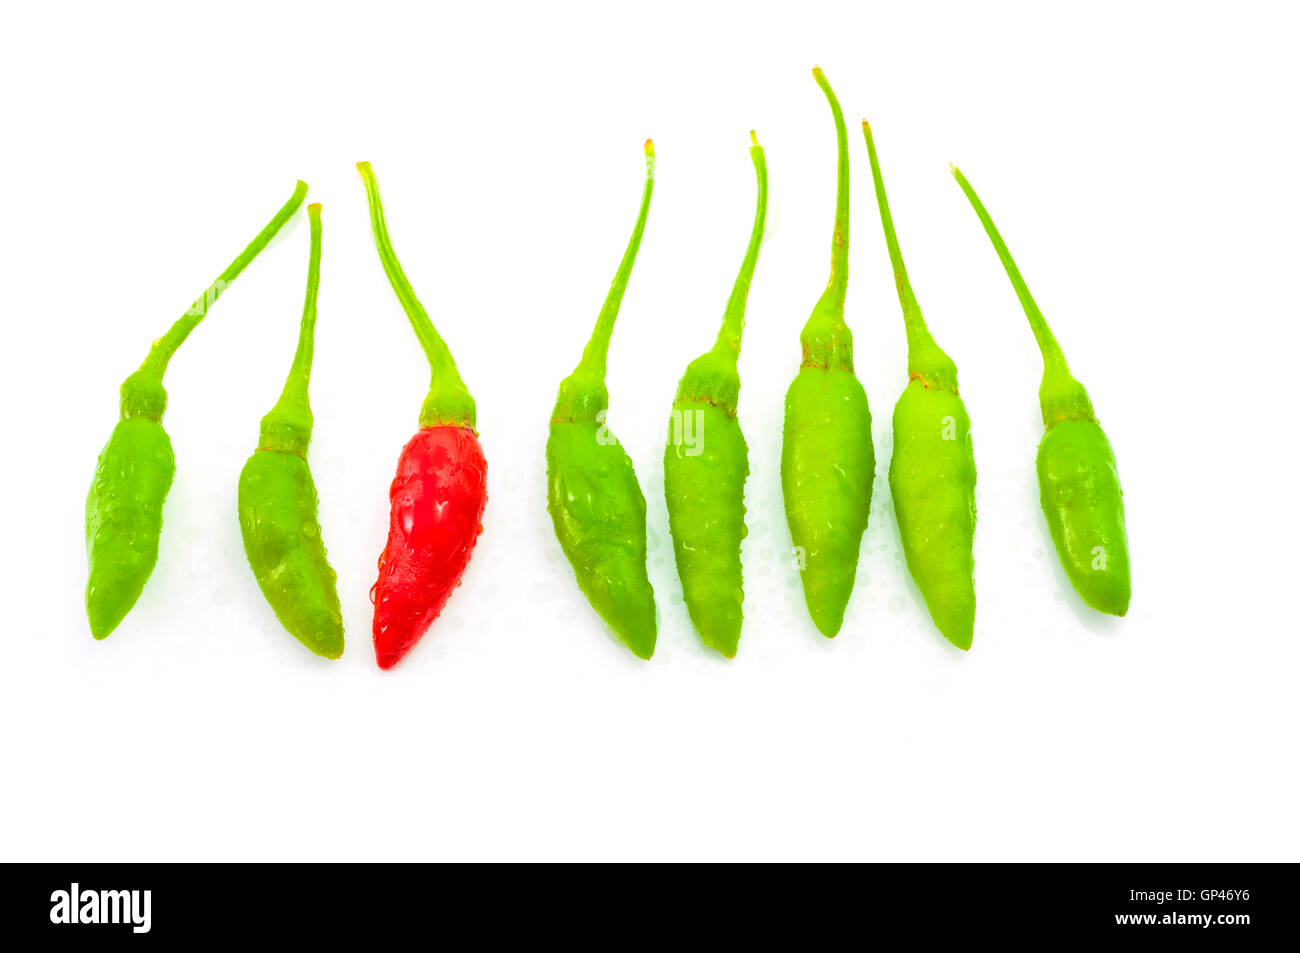 Red chilli among green chilli - Stock Image